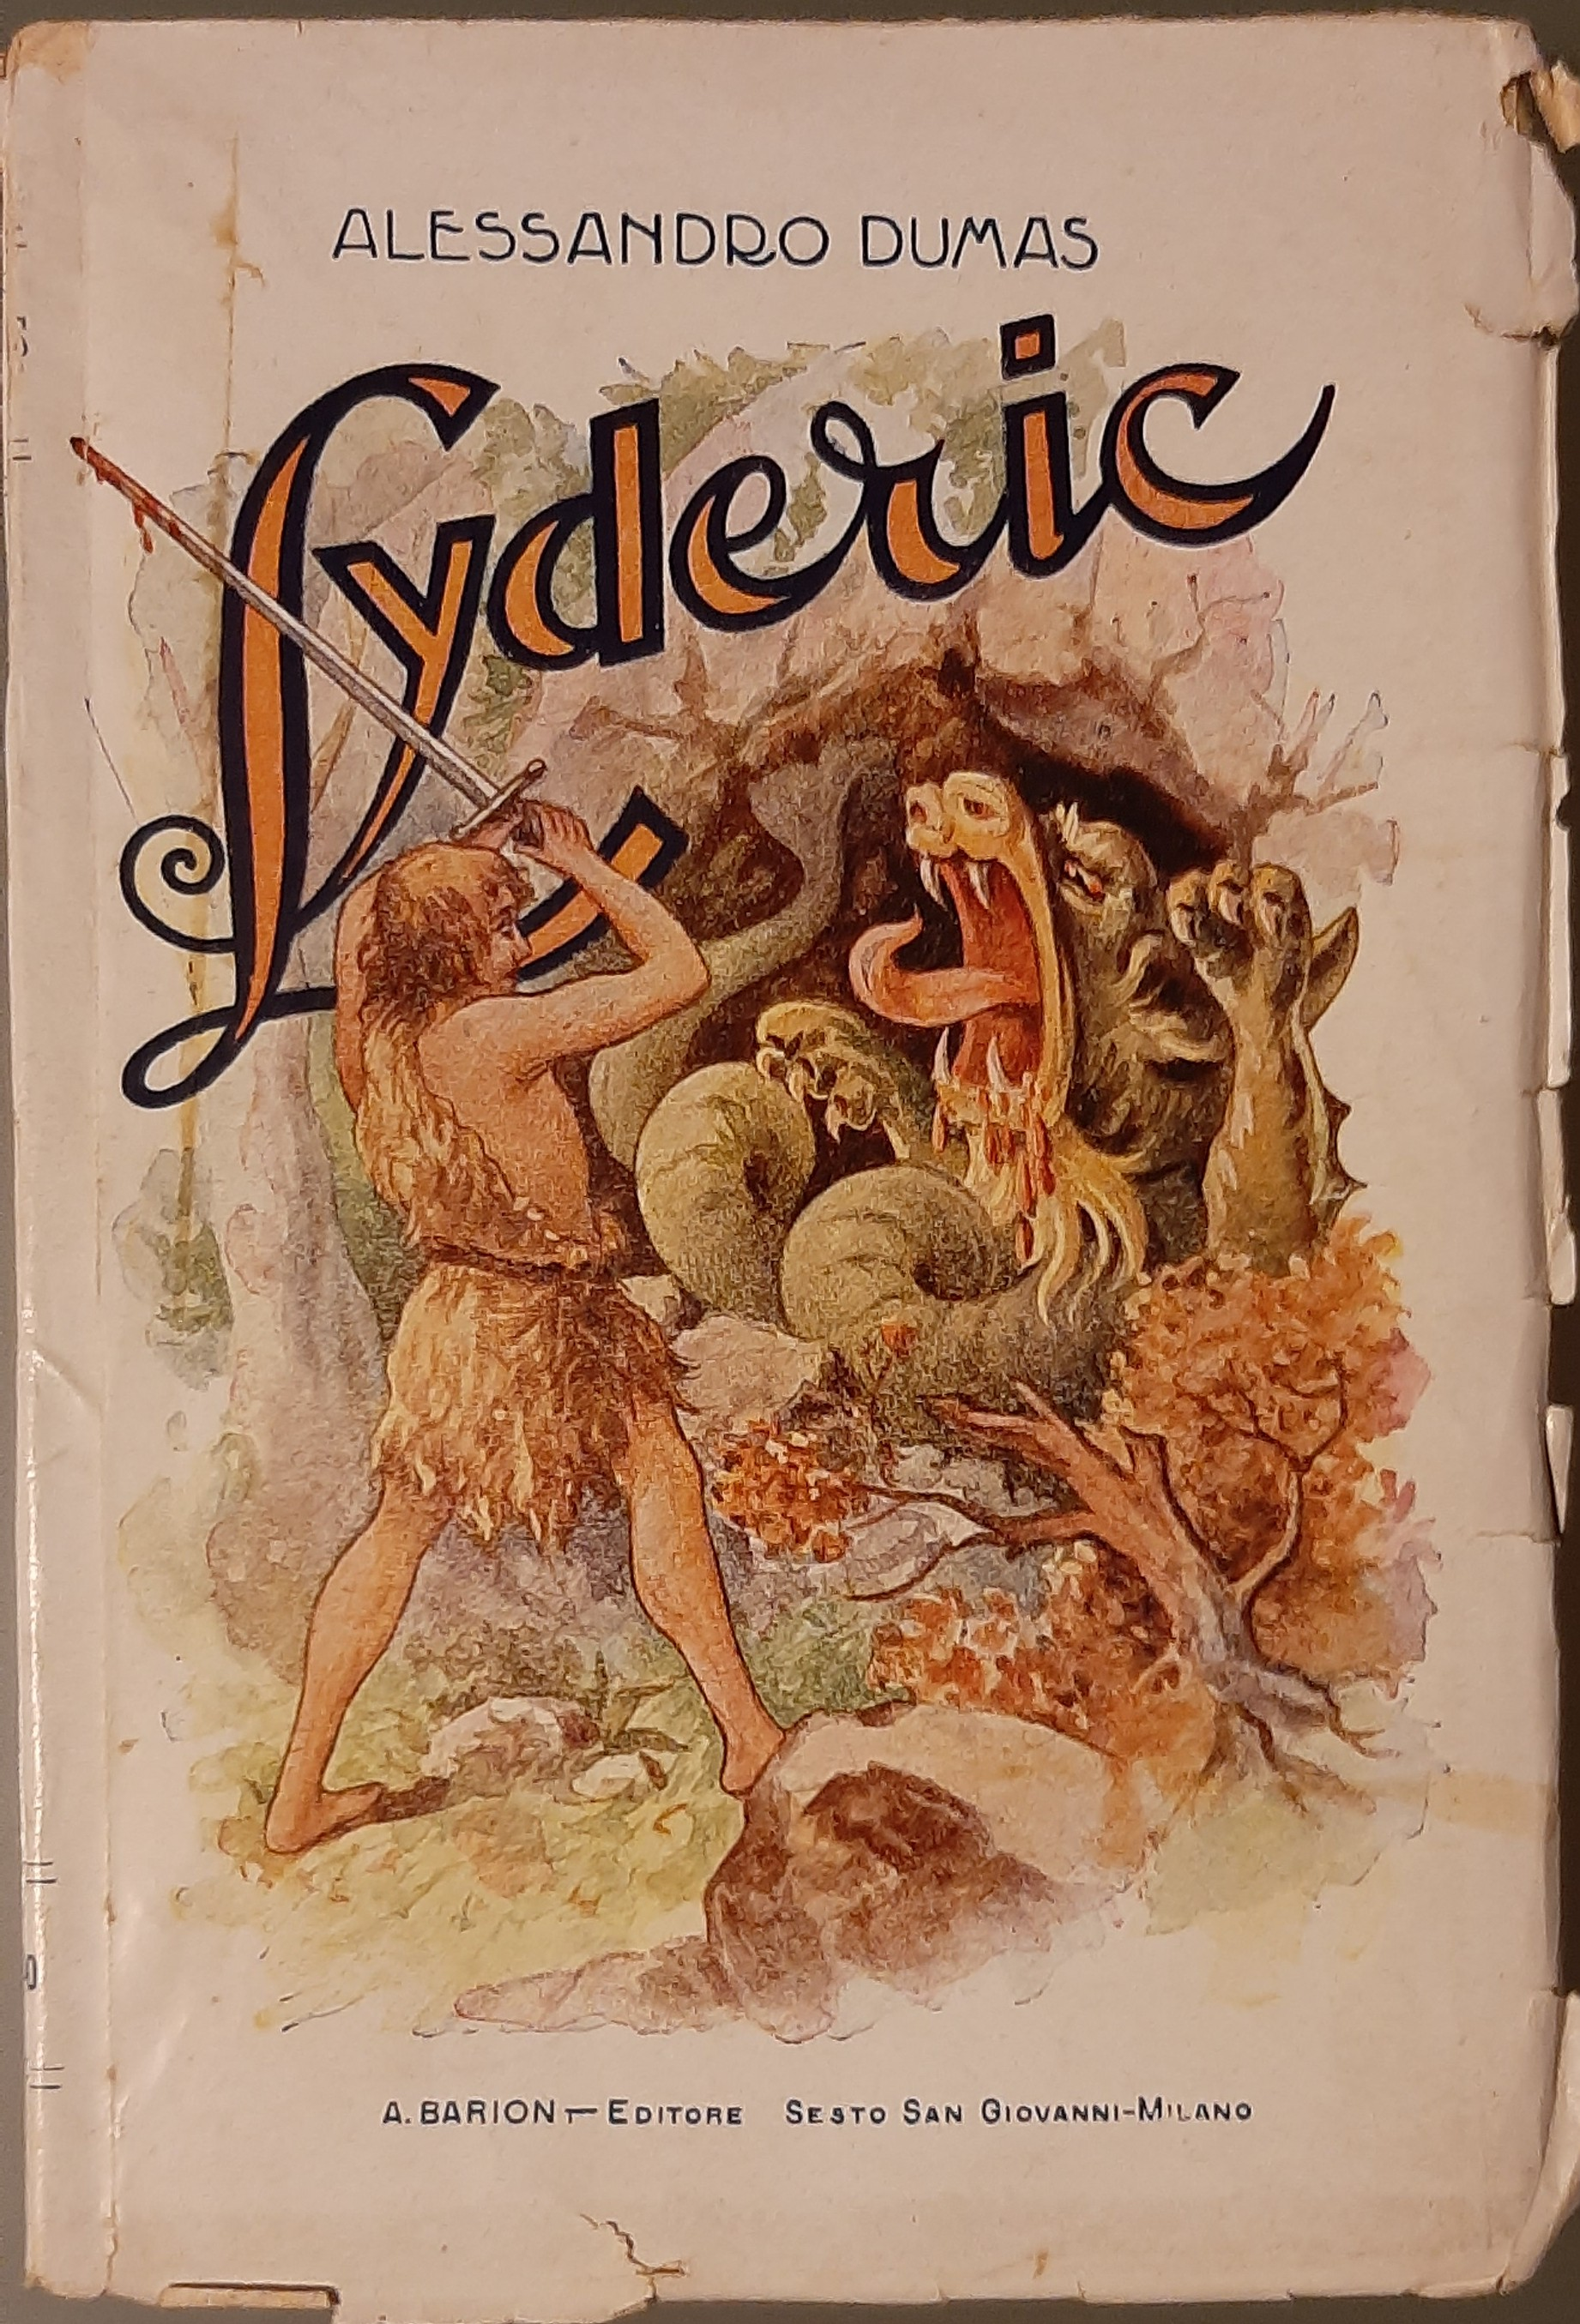 Lyderic